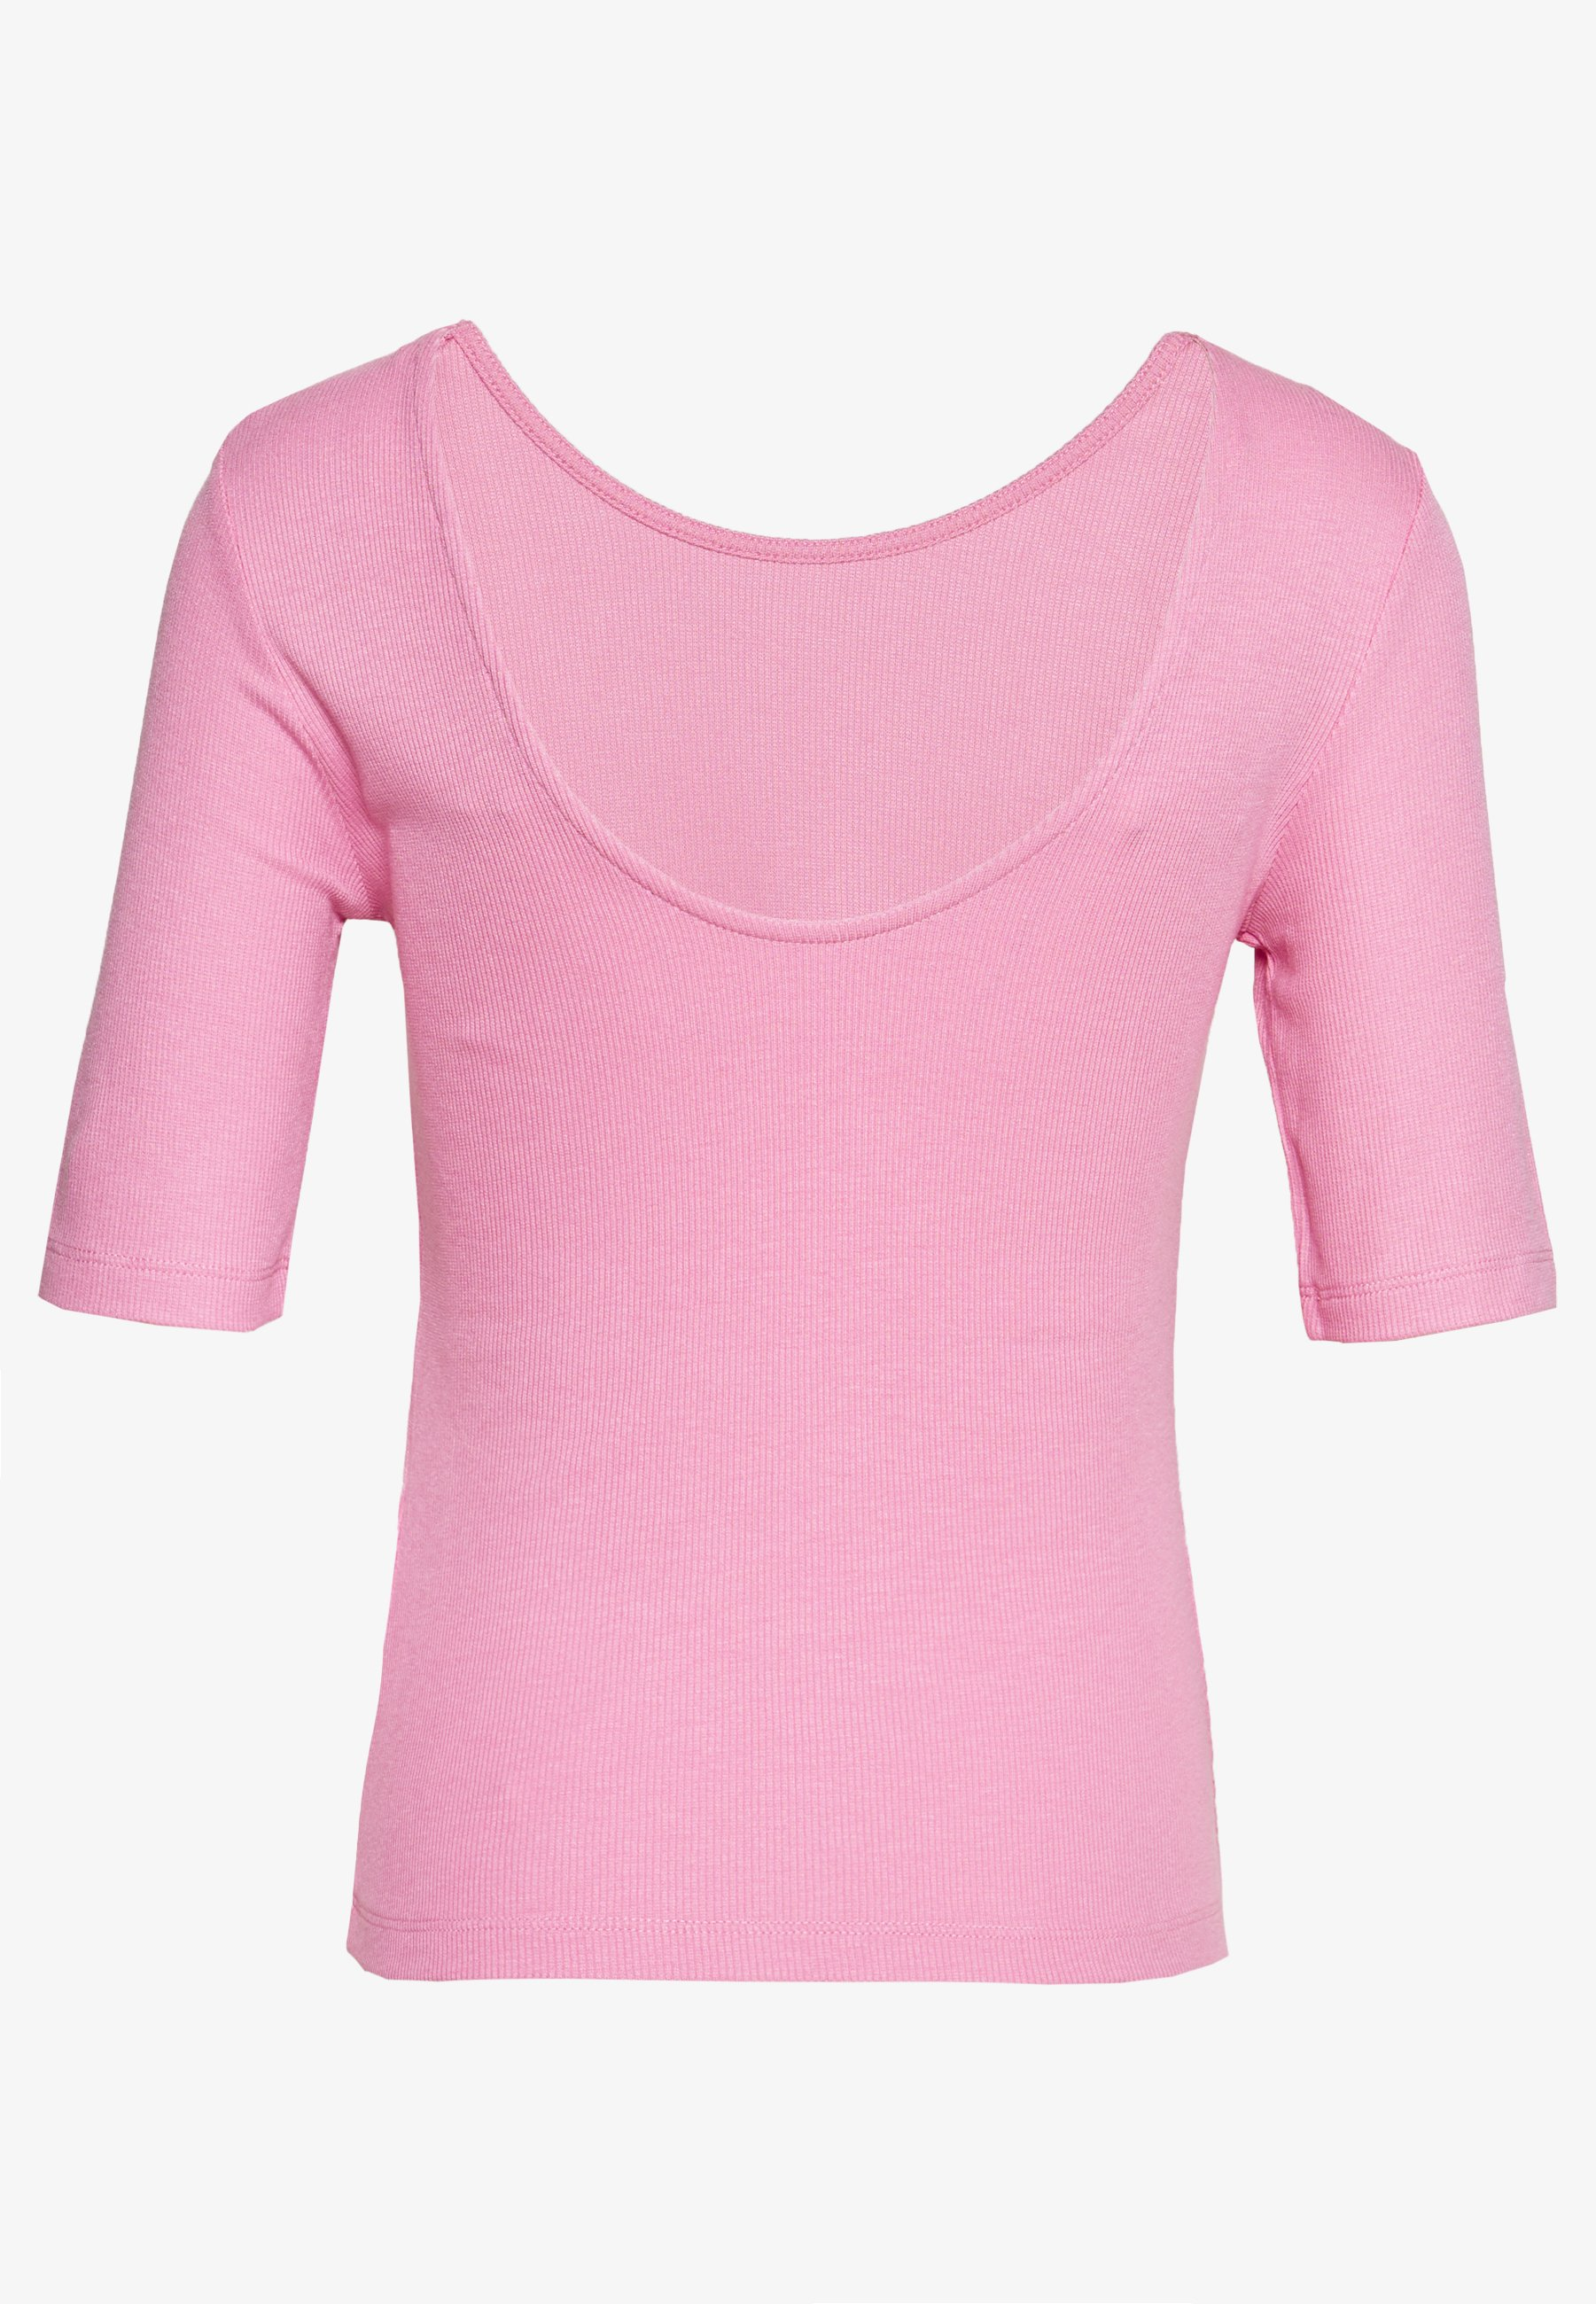 Edited Linh - T-shirt Basic Pink